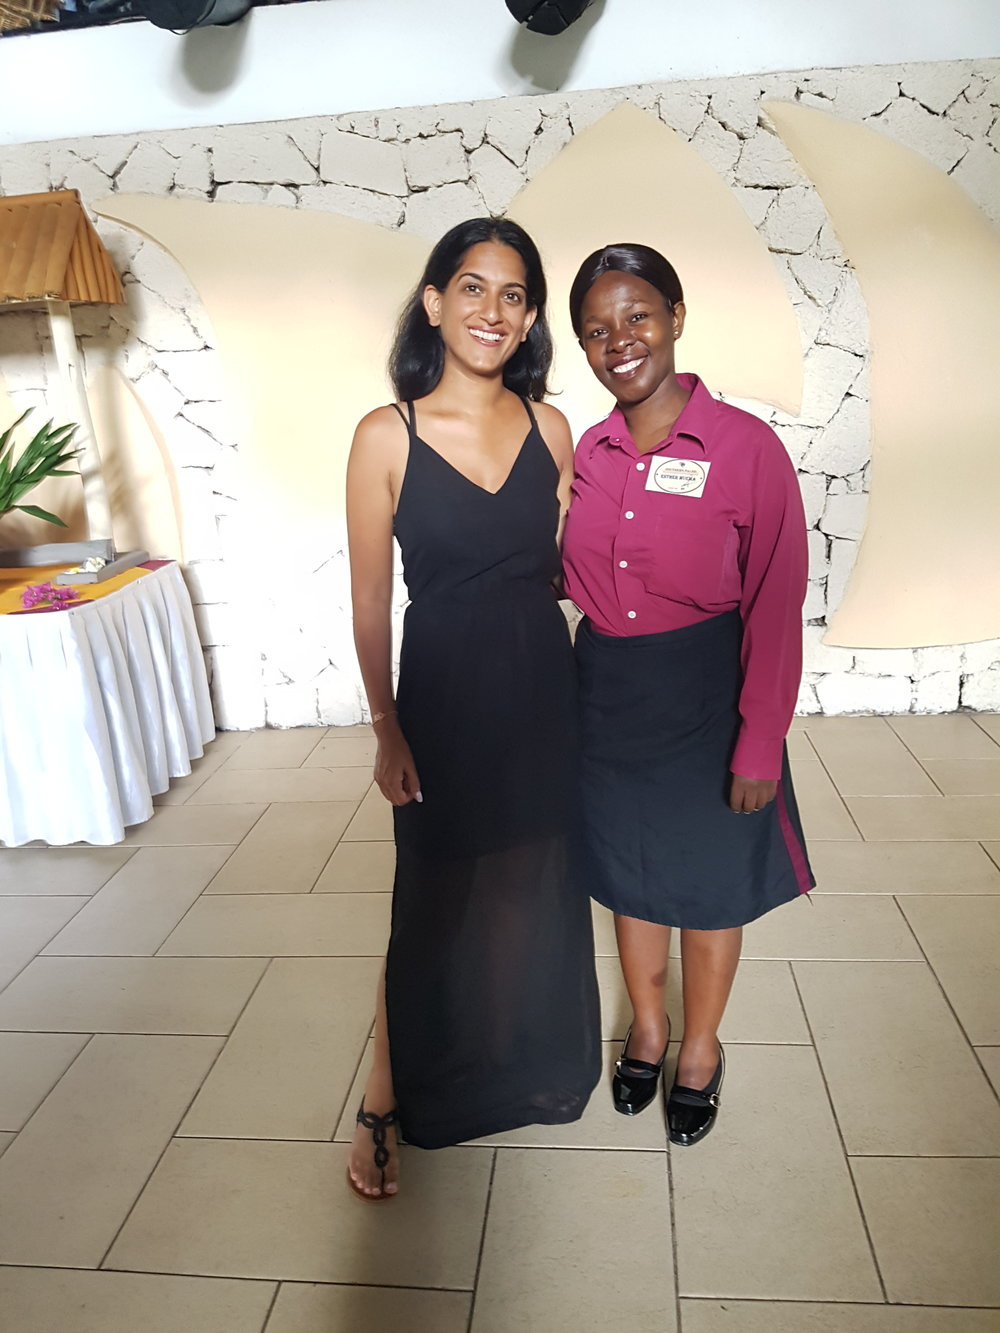 With Esther, the Assistant Restaurant Manageress of Southern Palms Resort